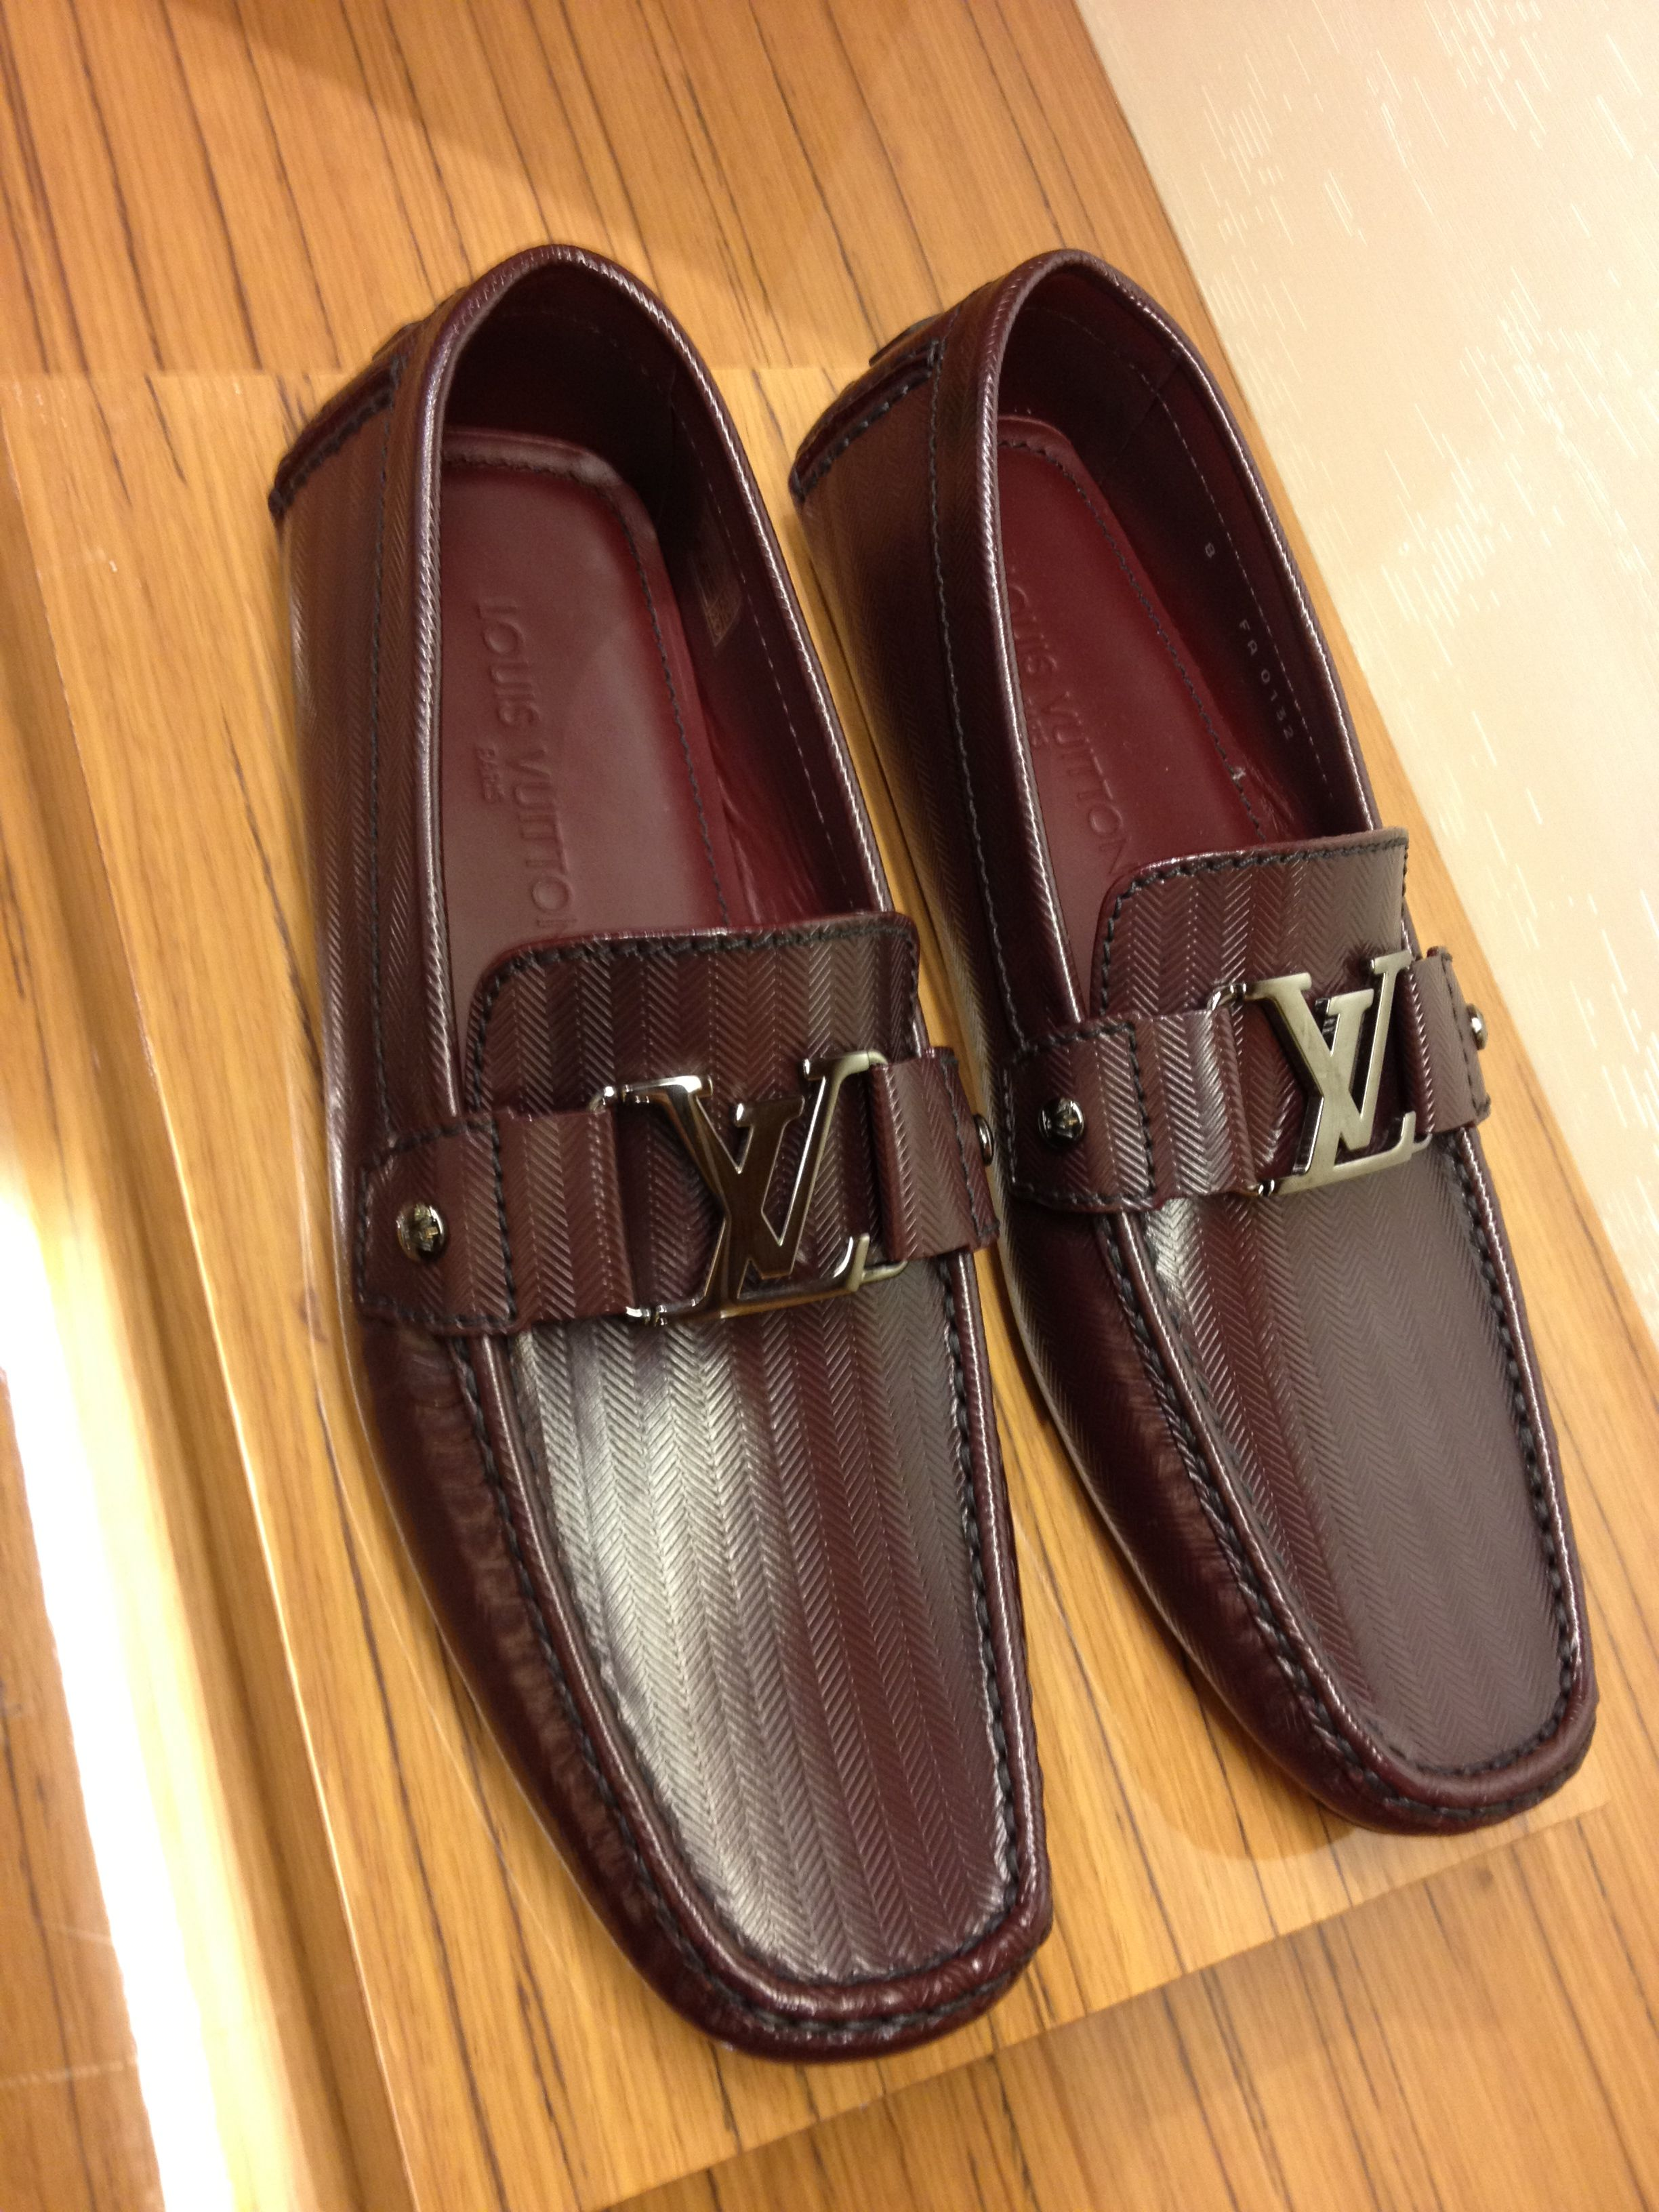 fbf9c6d426cc Sweet new Louis Vuitton loafer